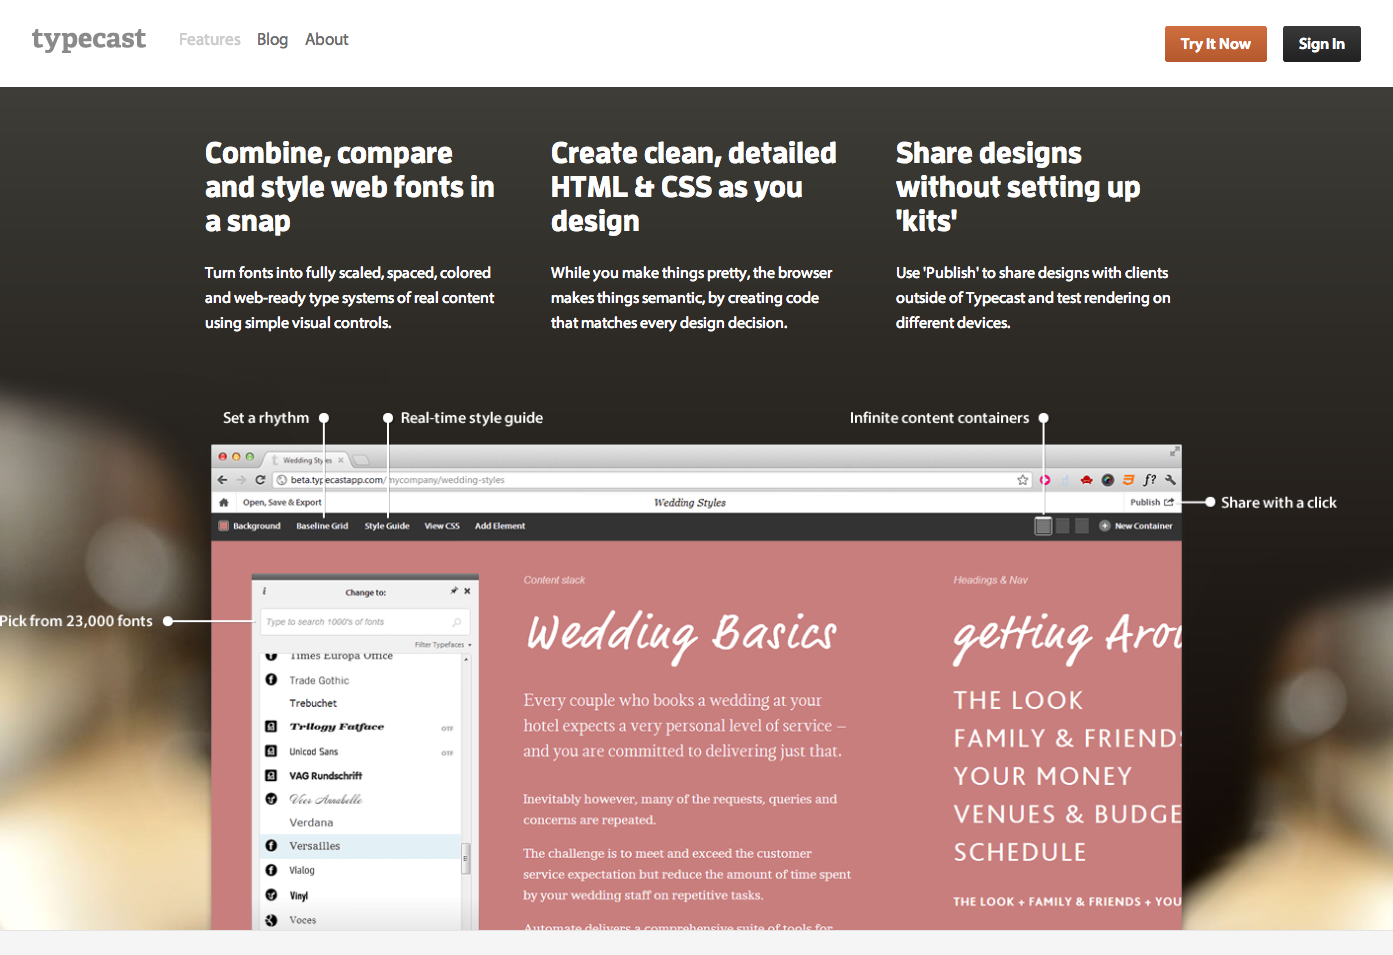 Typecast Design in the browser with web fonts and real